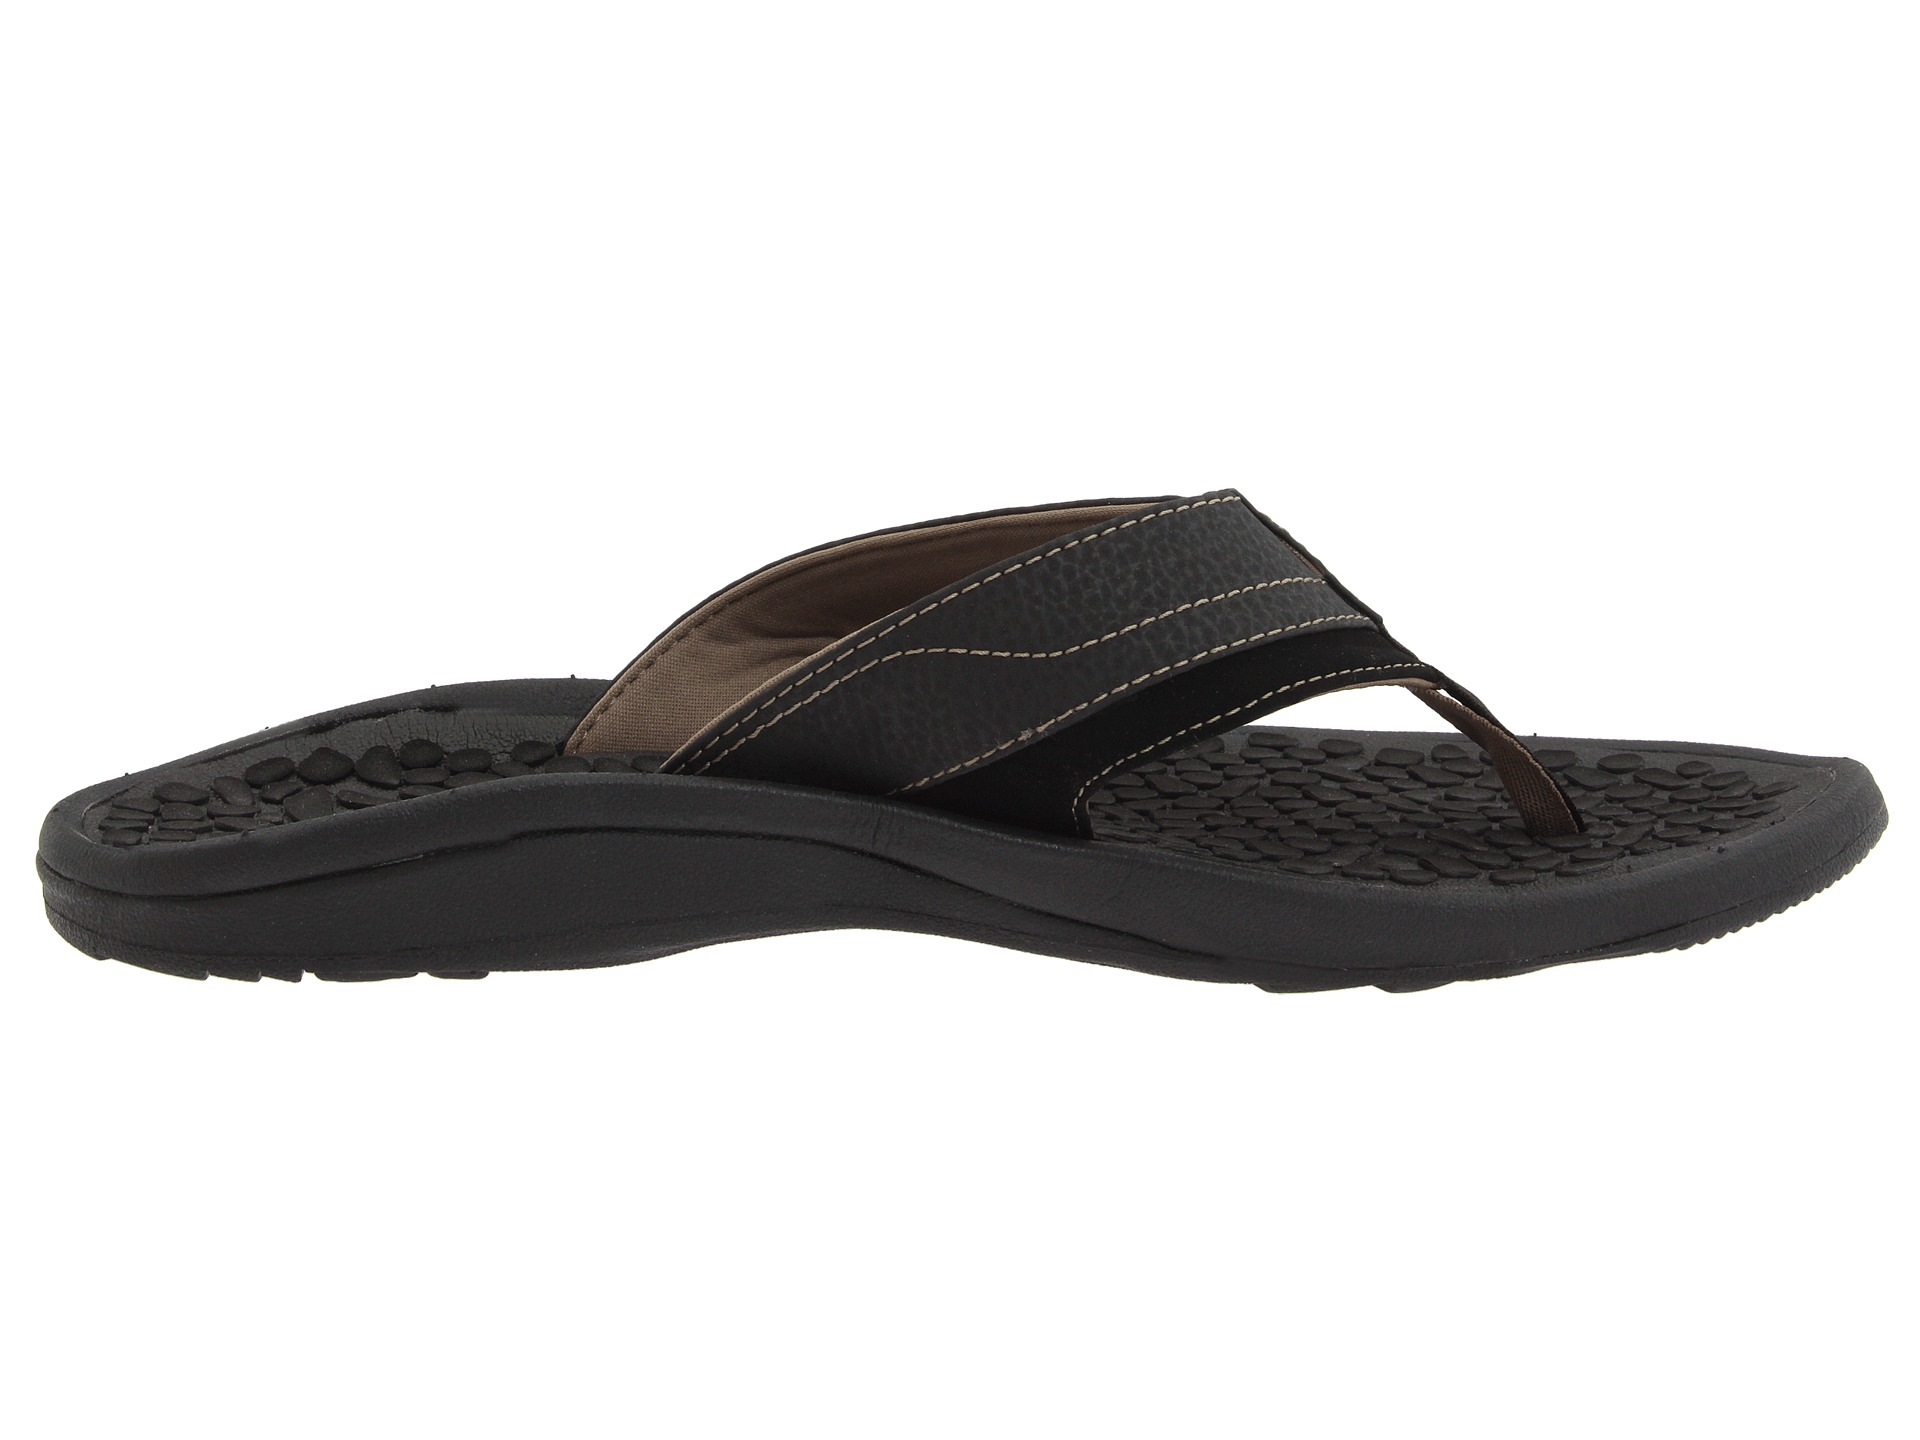 40a84e2bc4f9 Lyst - Reef Playa Negra in Black for Men